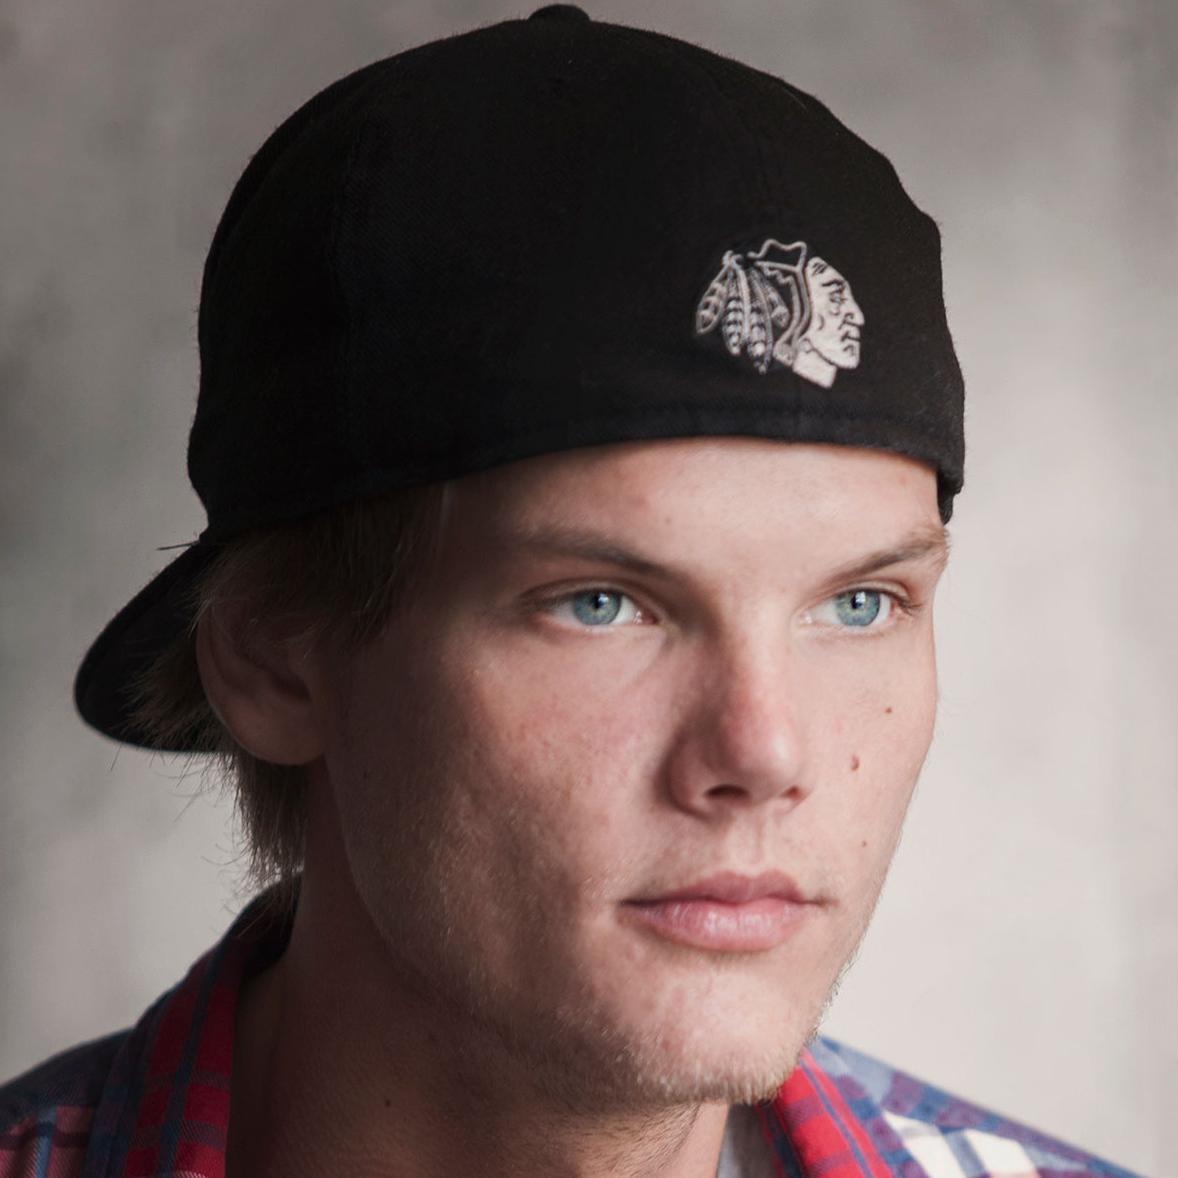 Avicii Bio, Net Worth, Facts